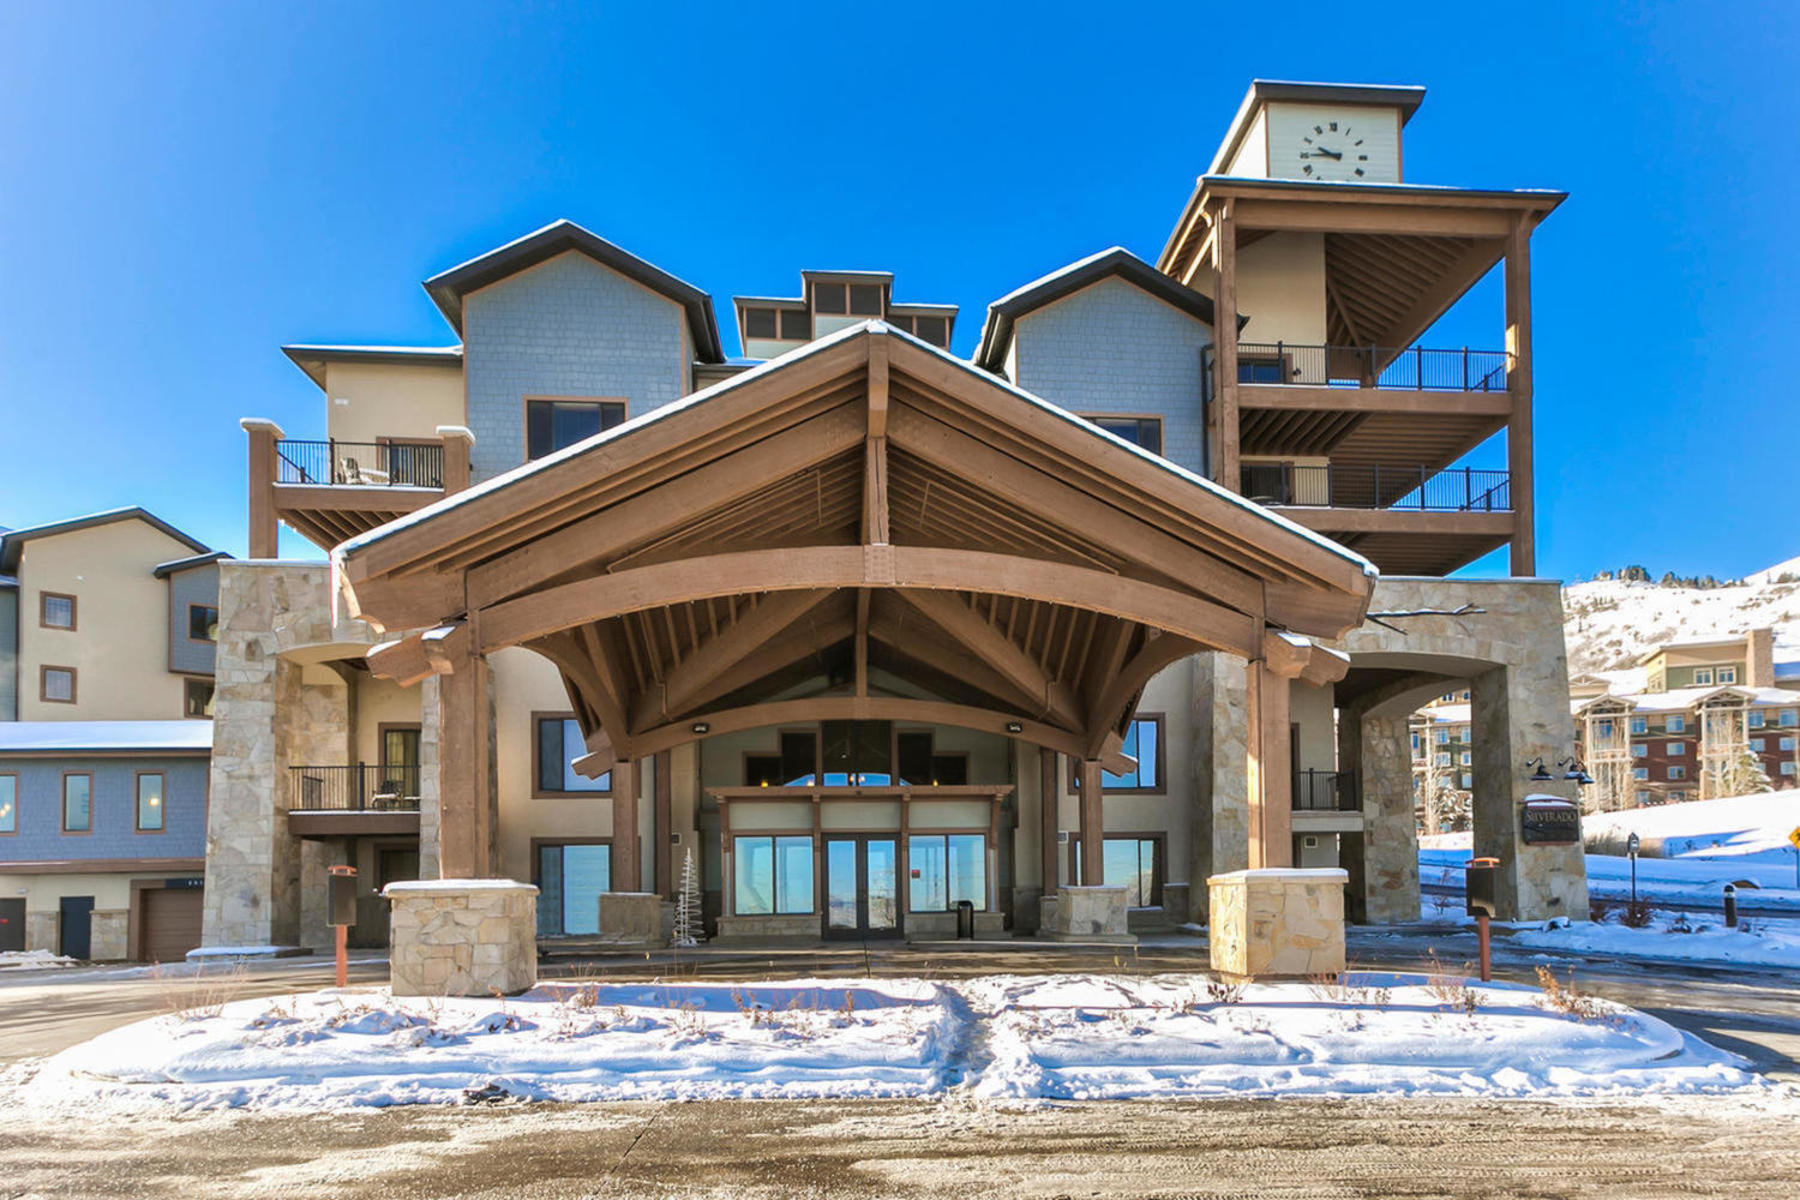 Copropriété pour l Vente à Top Floor Silverado One-bedroom Condominium 2669 Canyons Resort Dr #304A Park City, Utah, 84098 États-Unis